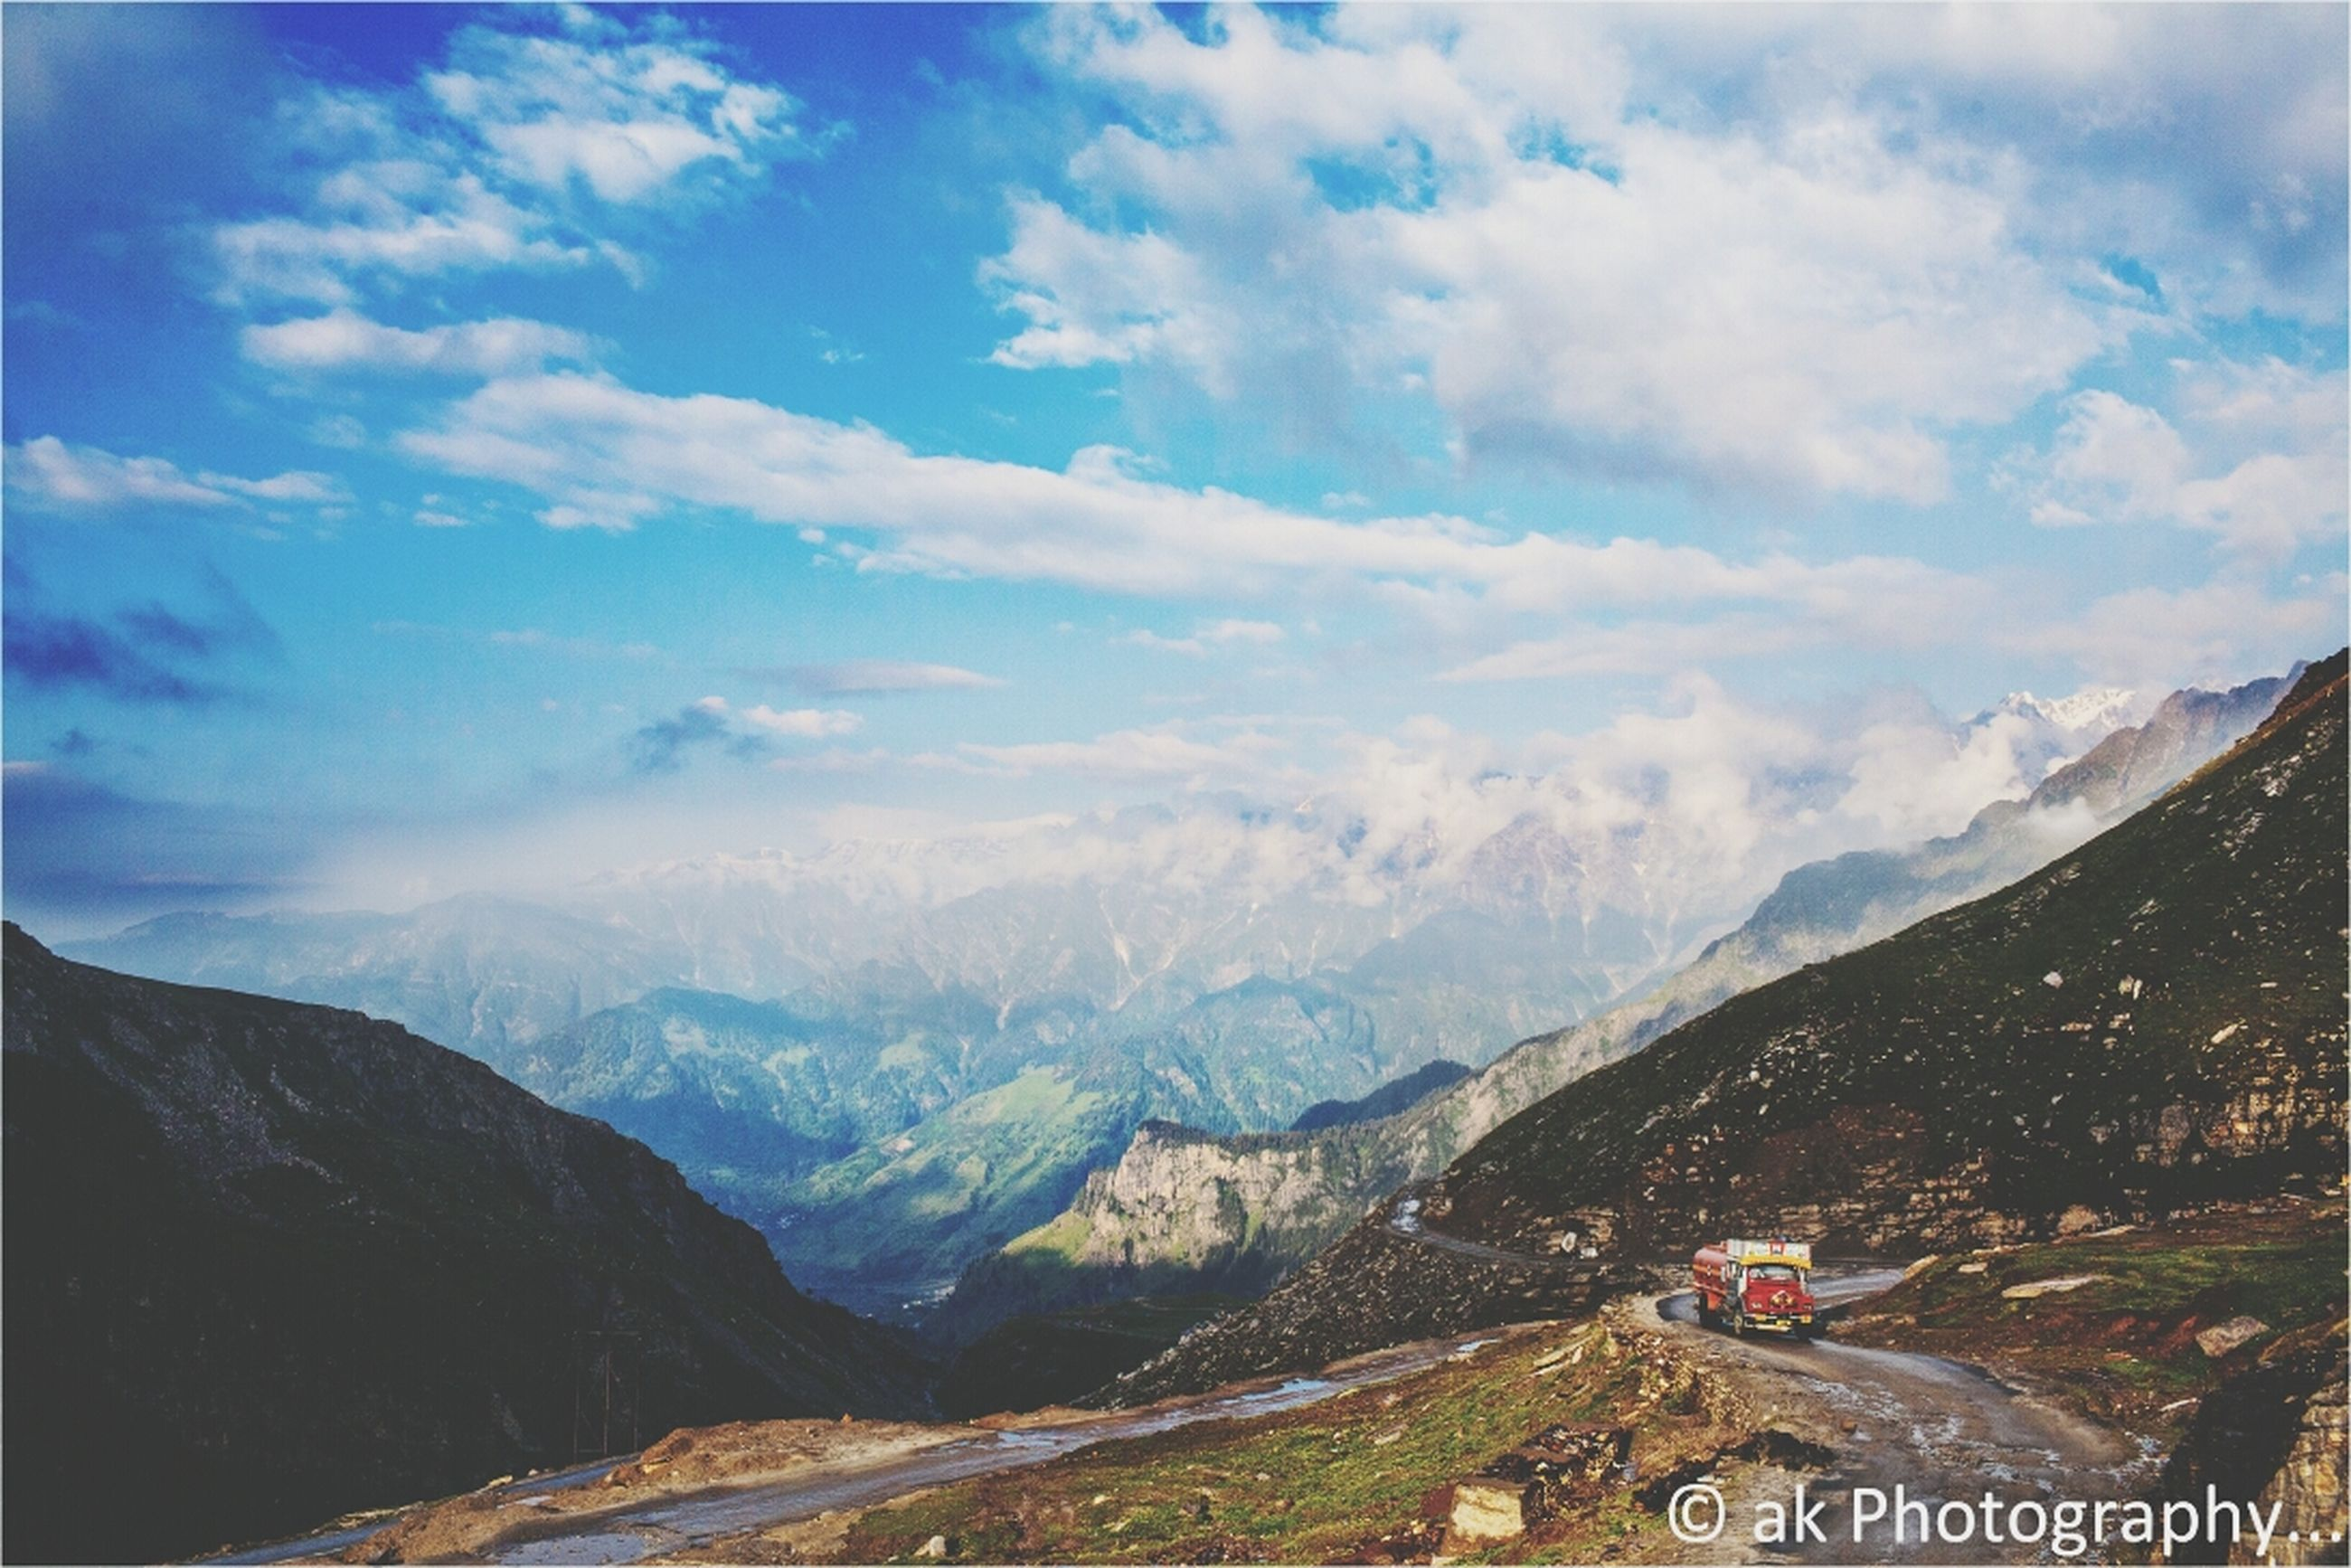 mountain, sky, mountain range, scenics, landscape, tranquil scene, beauty in nature, tranquility, cloud - sky, nature, cloud, non-urban scene, transportation, high angle view, cloudy, road, idyllic, remote, day, outdoors